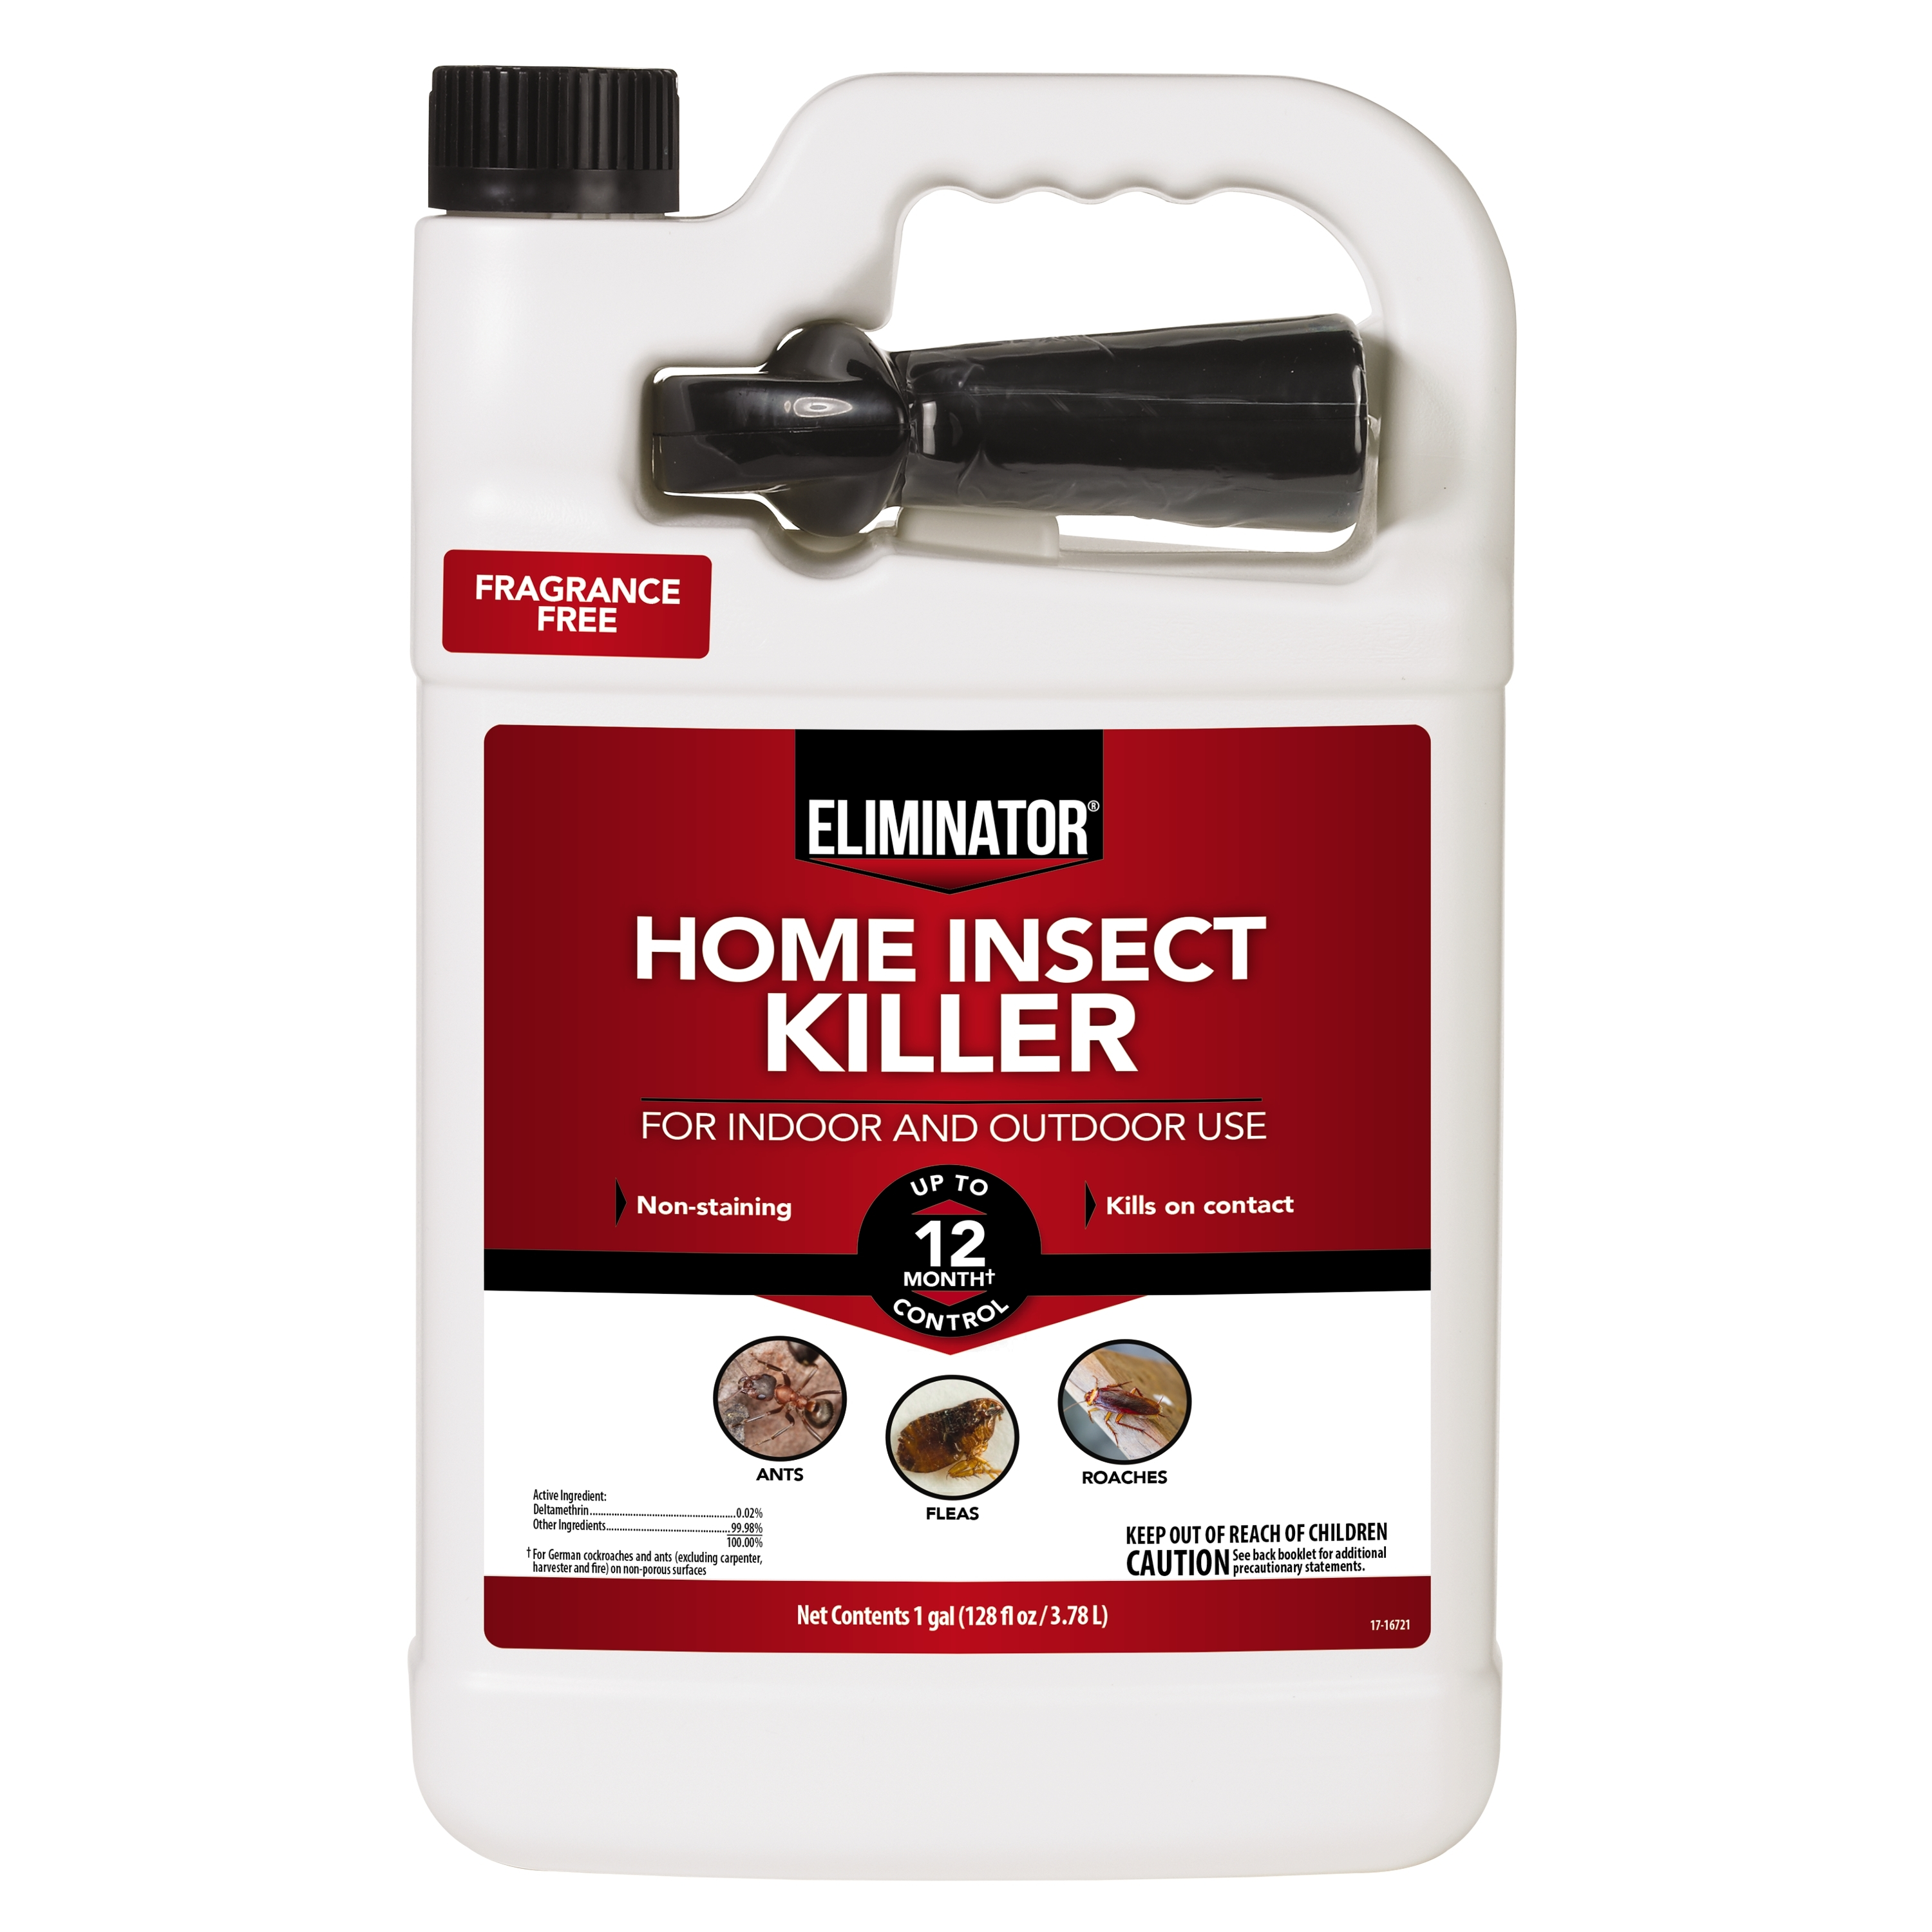 Eliminator Home Insect Control 1 Gallon Com Installation Of The Kill Switch And Heater Backdate For 911